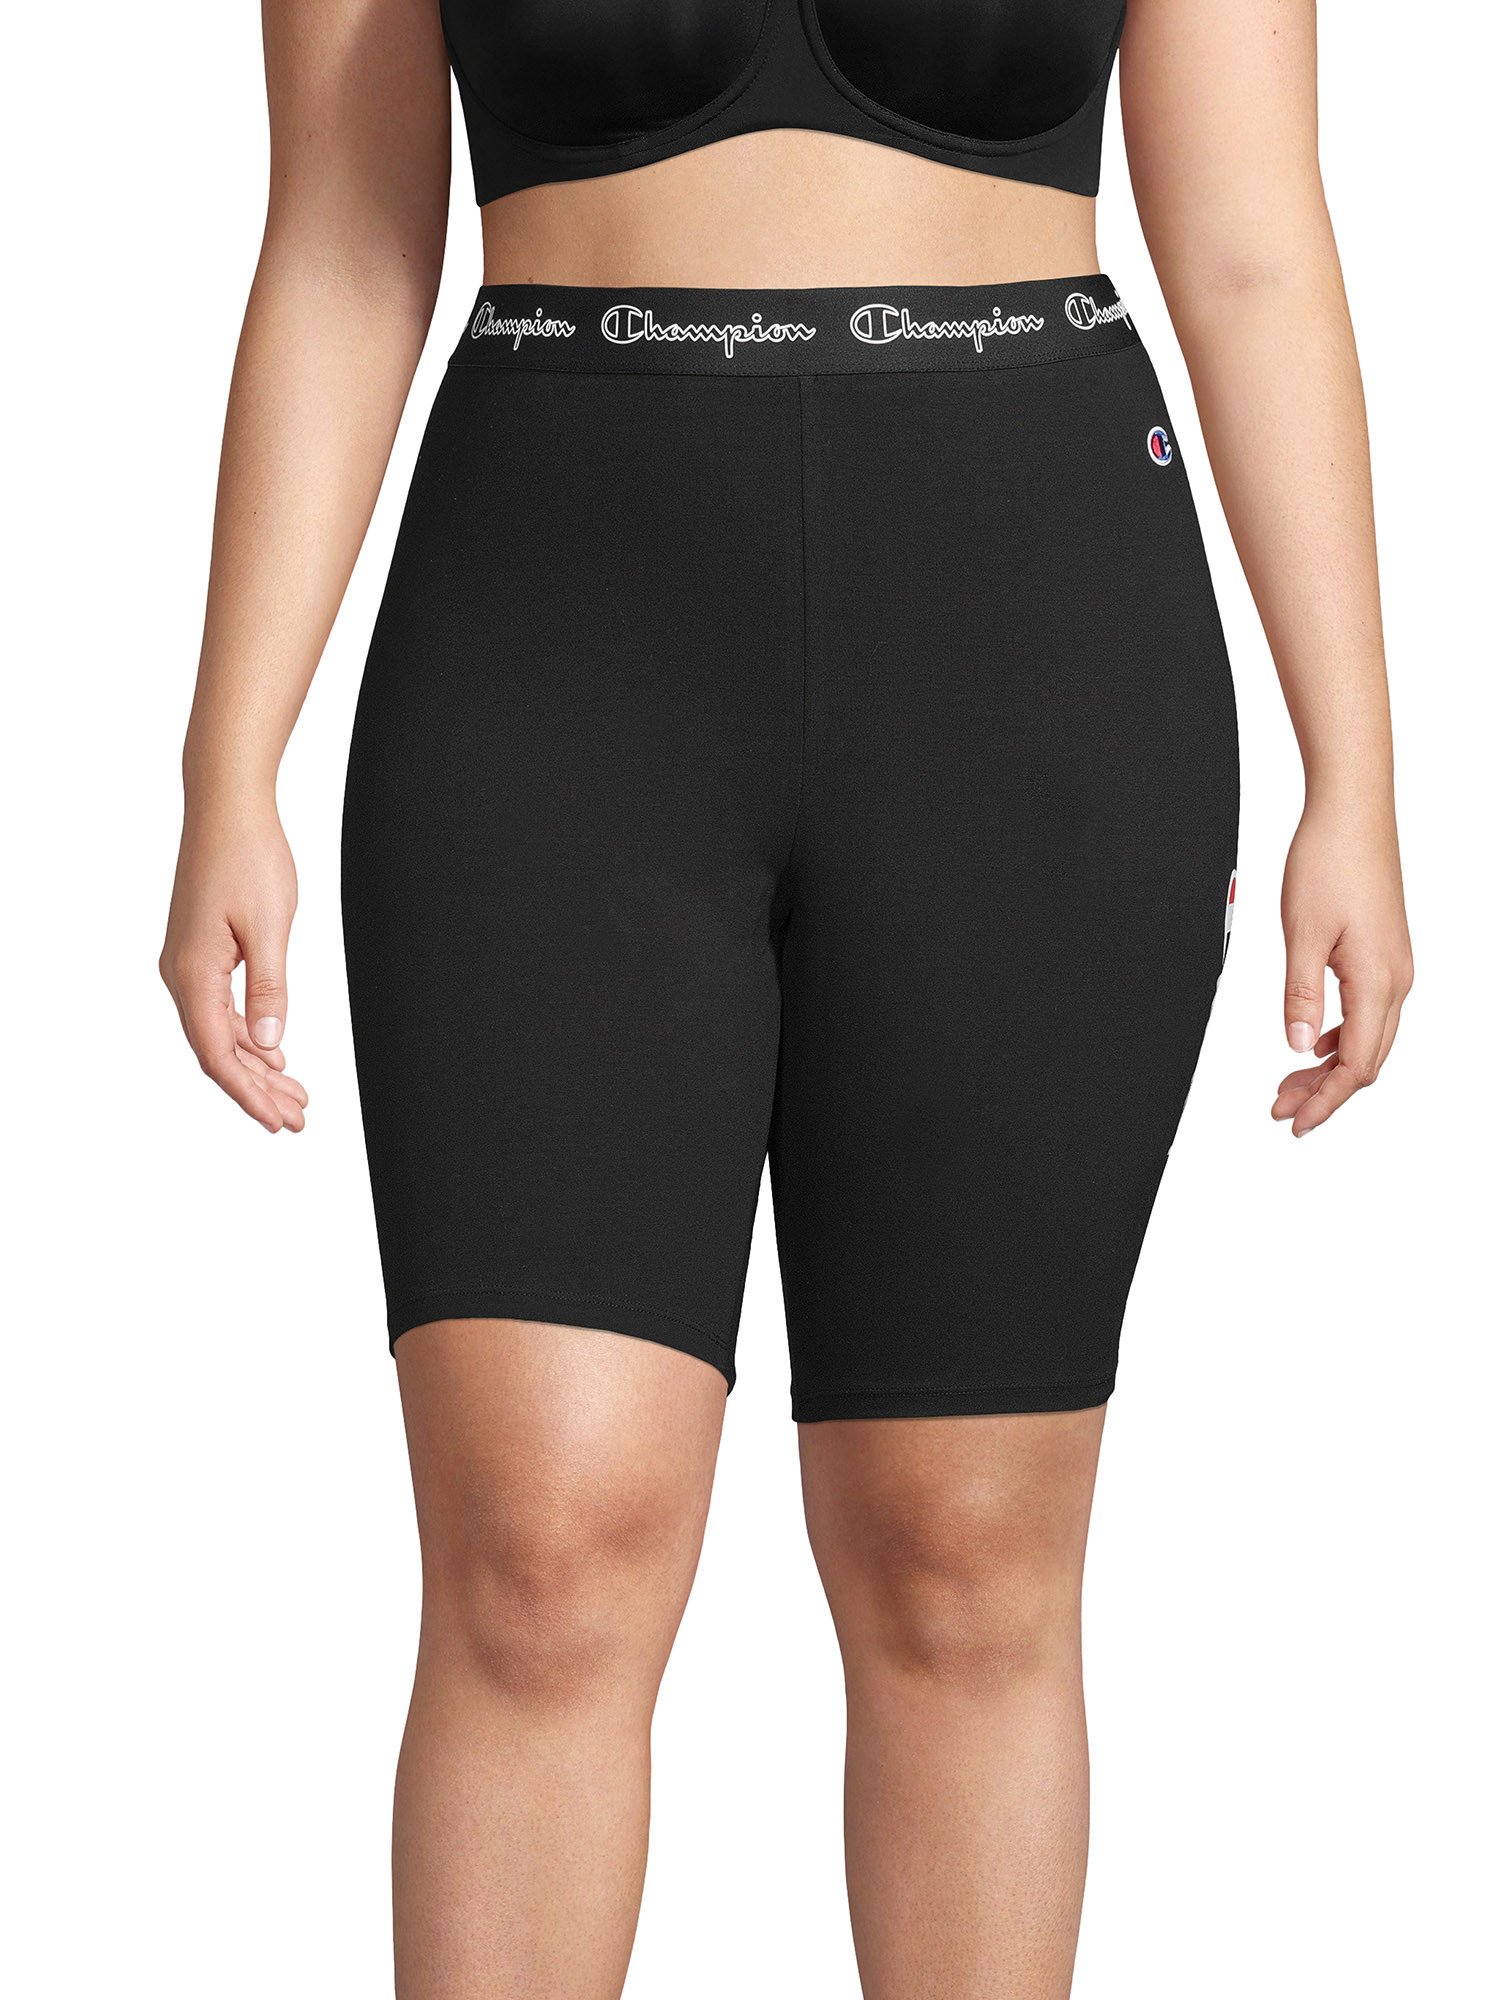 person wearing black bike shorts